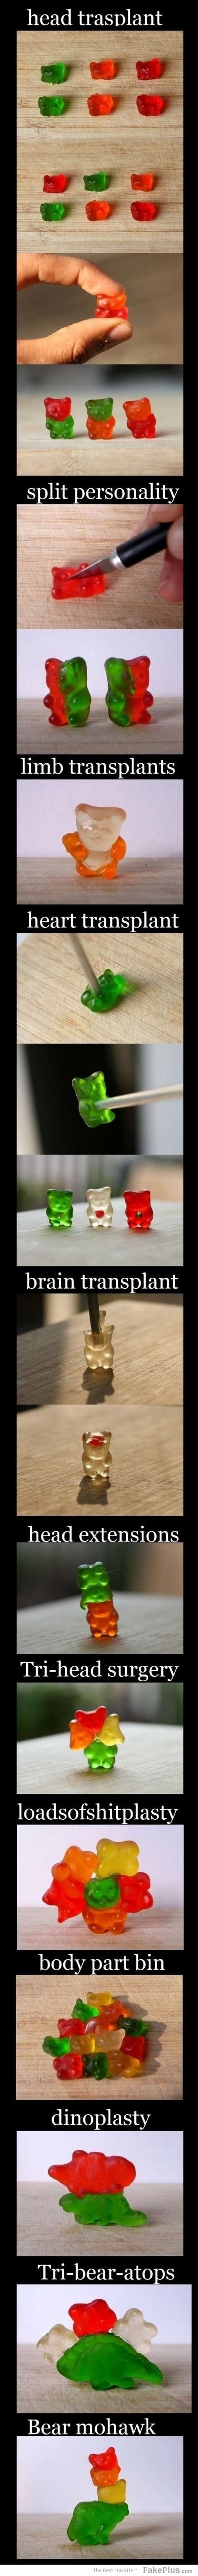 when im bored like hell i play with gummy bears